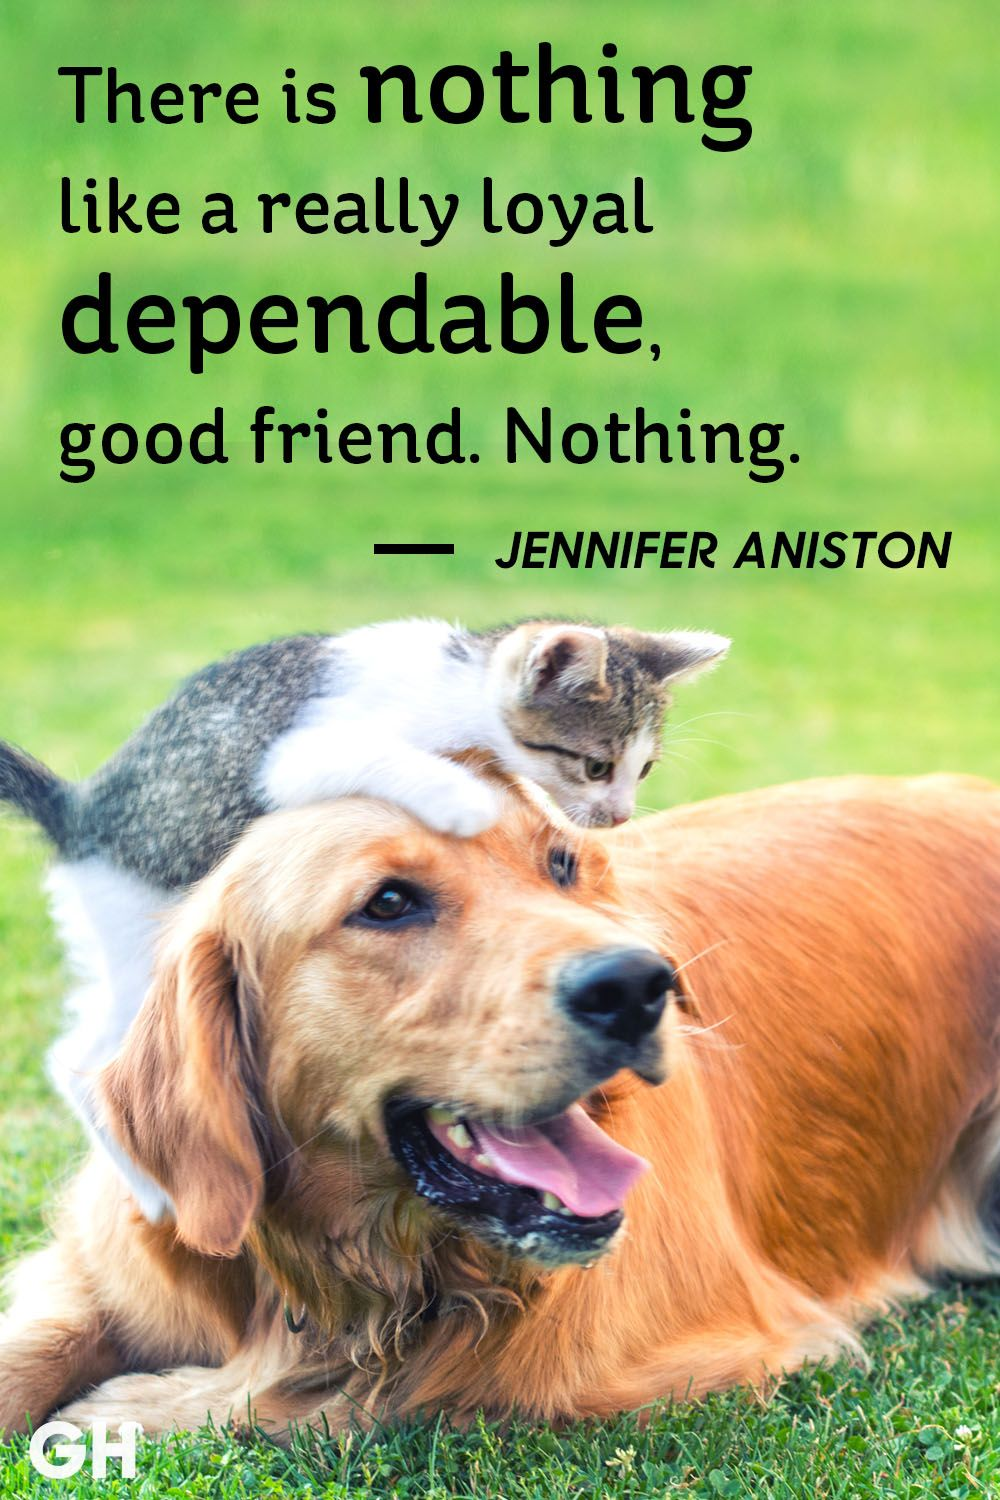 20 Short Friendship Quotes To Share With Your Best Friend   Cute Sayings  About Friends